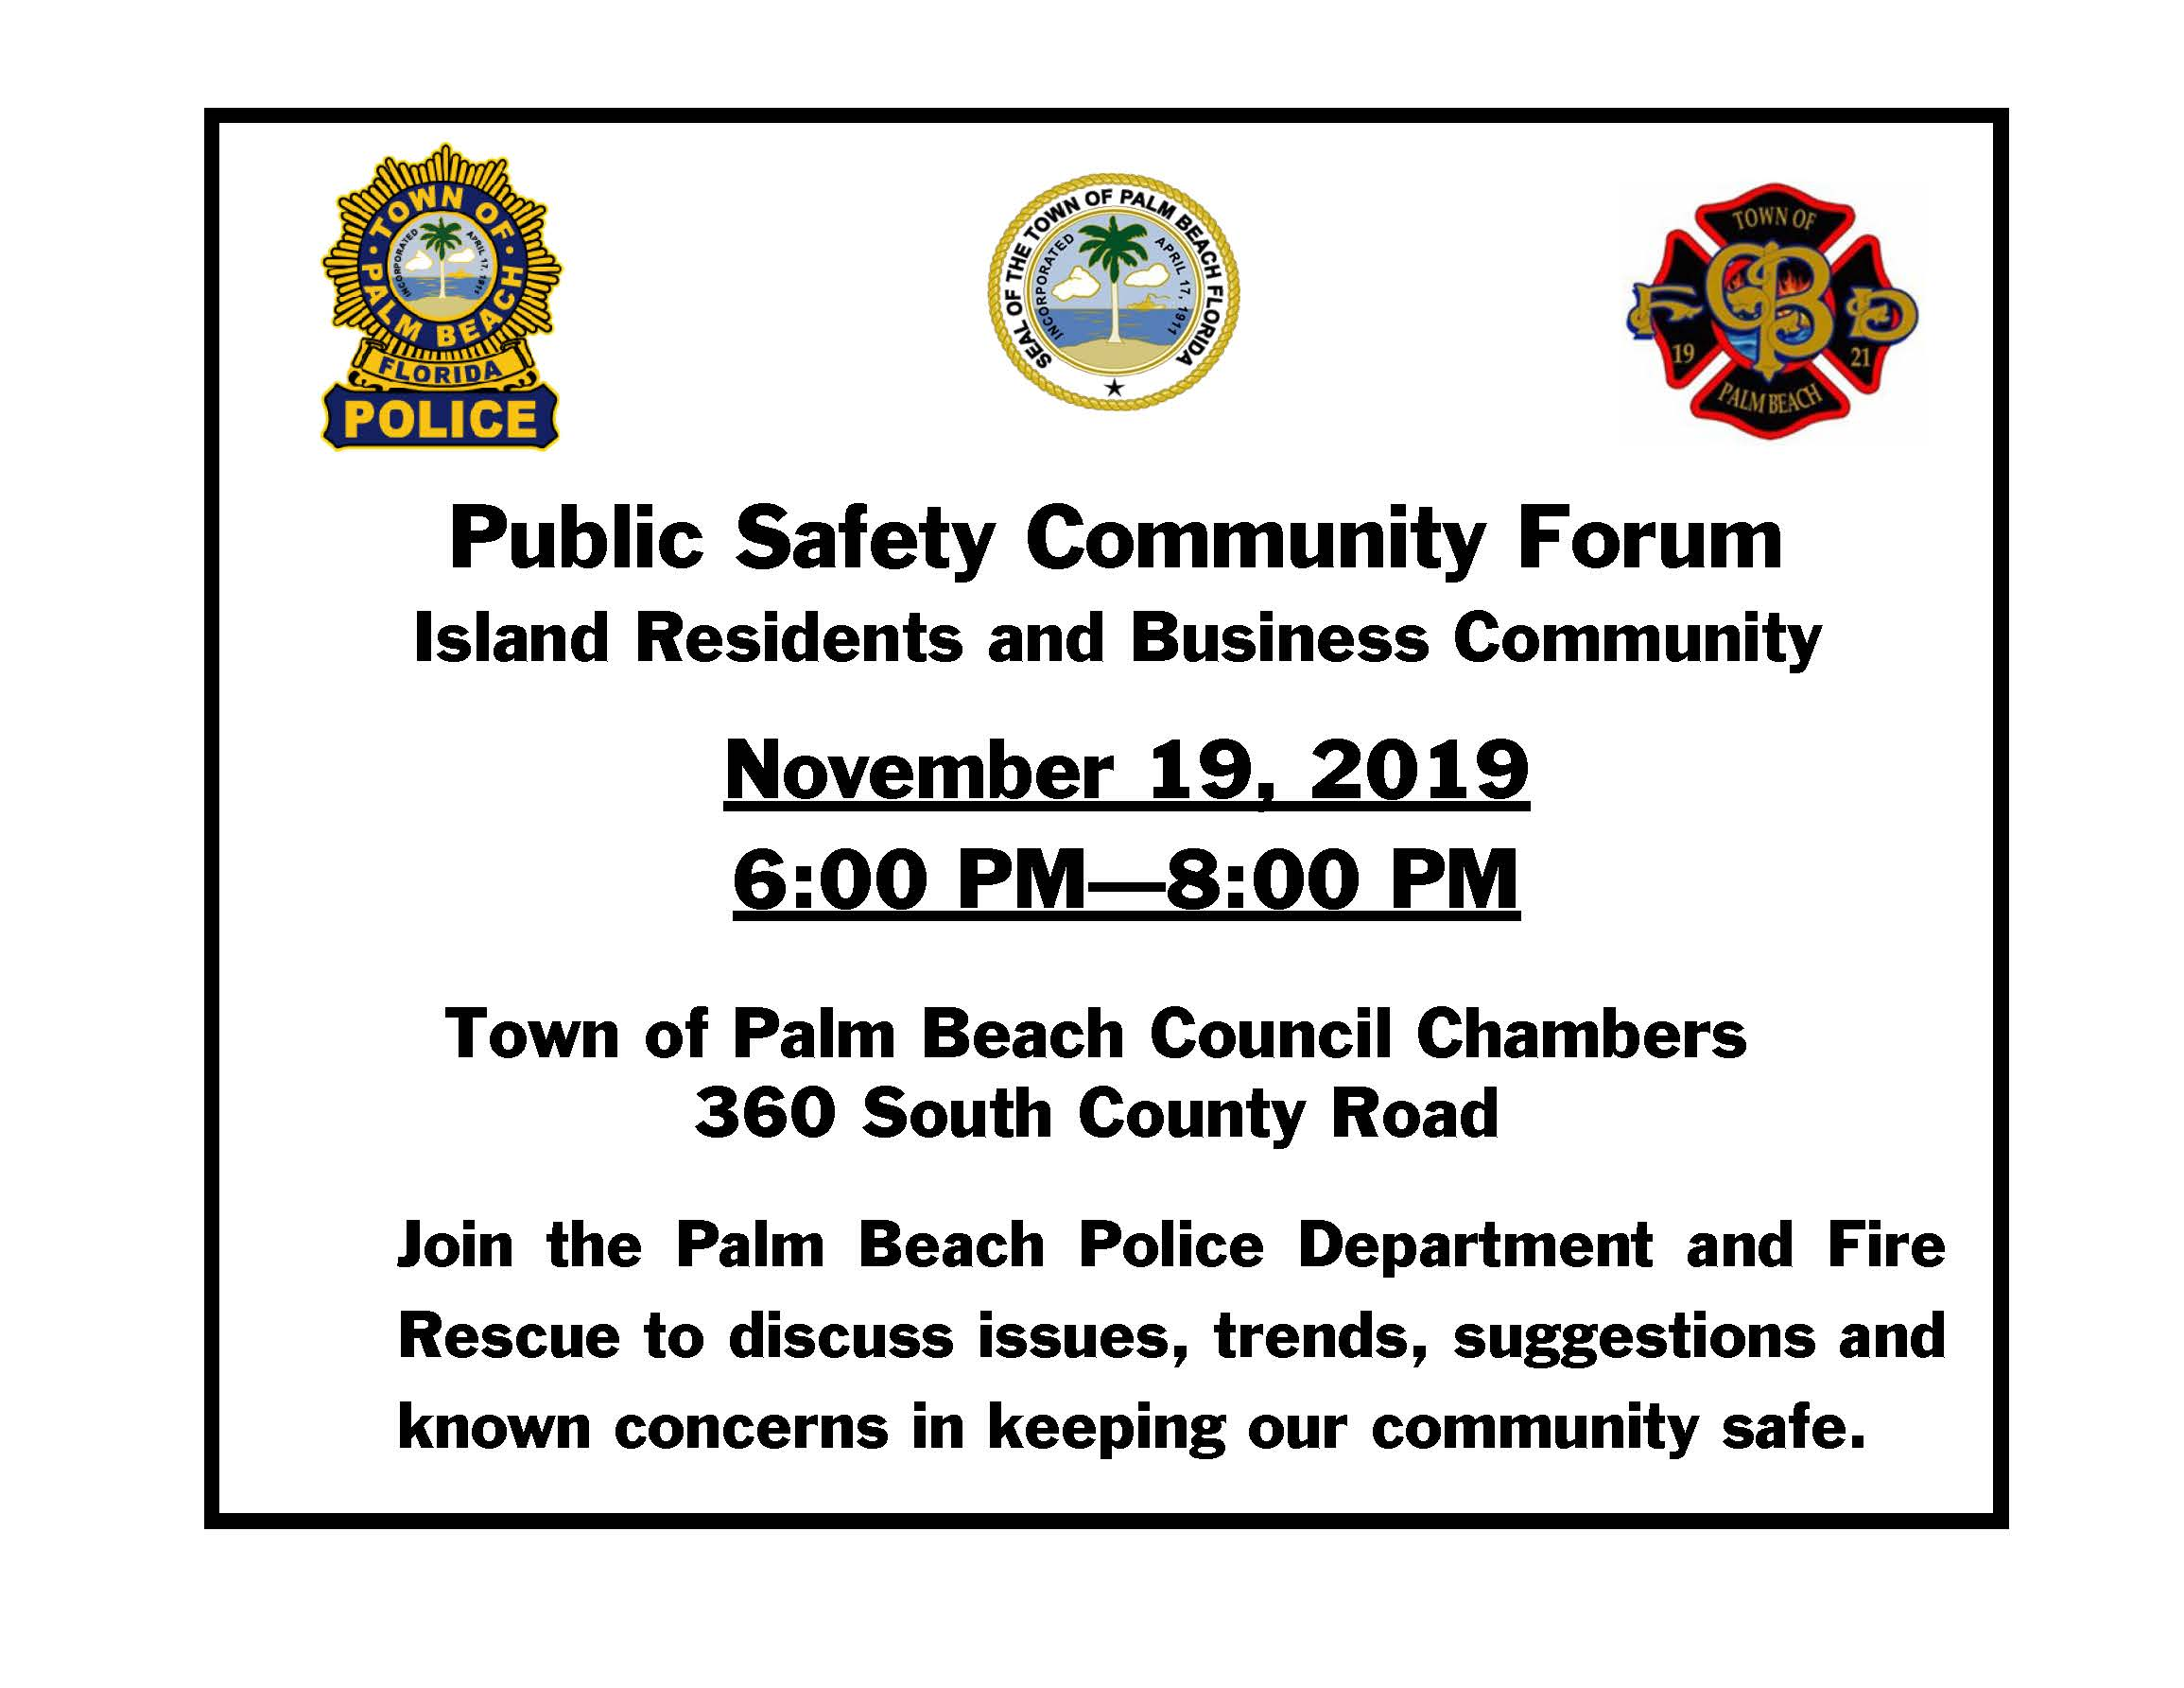 Public Safety Forum 11-19-19.